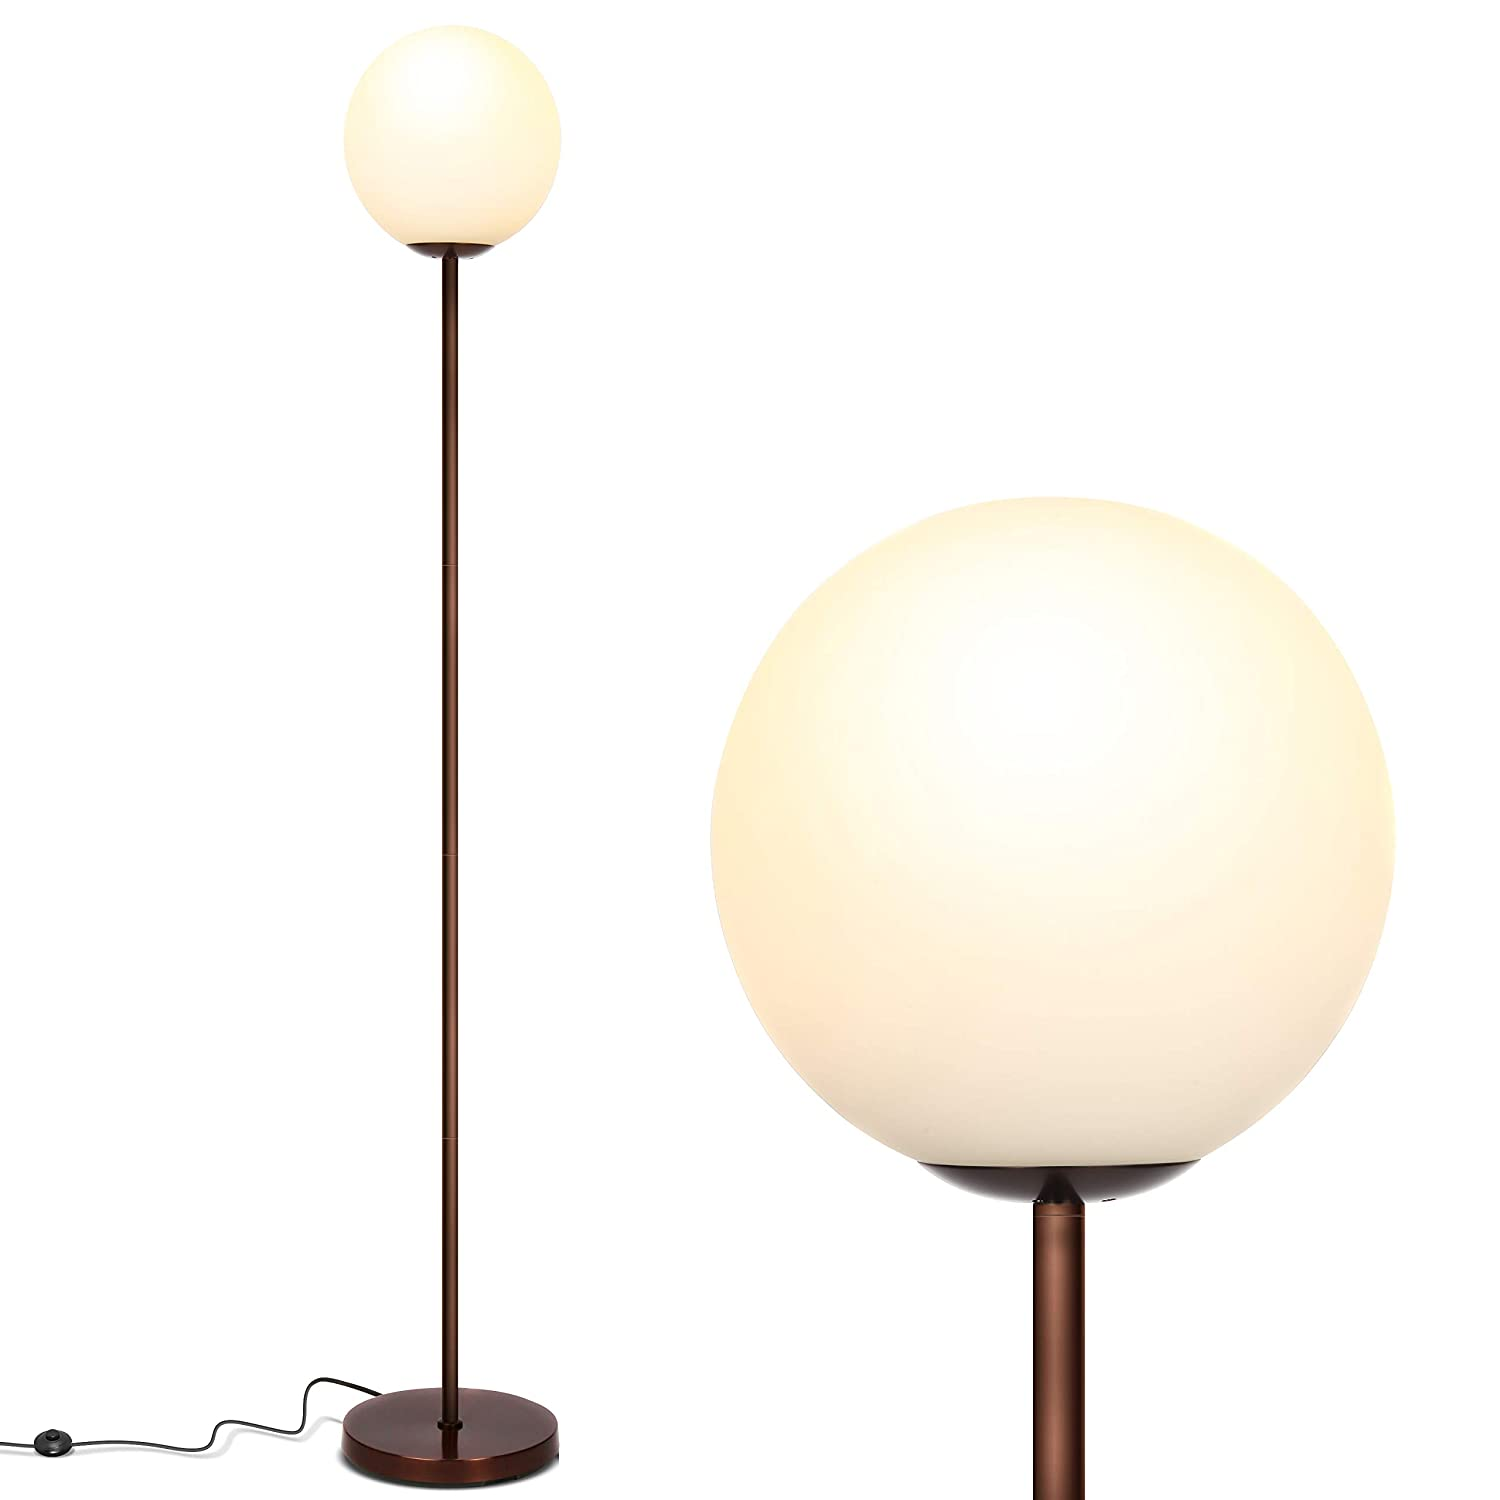 Brightech Luna - Frosted Glass Globe LED Floor Lamp - Mid Century Modern, Standing Lamp for Living Rooms - Tall Pole Light for Bedroom & Office - with LED Bulb - Oil Brushed Bronze